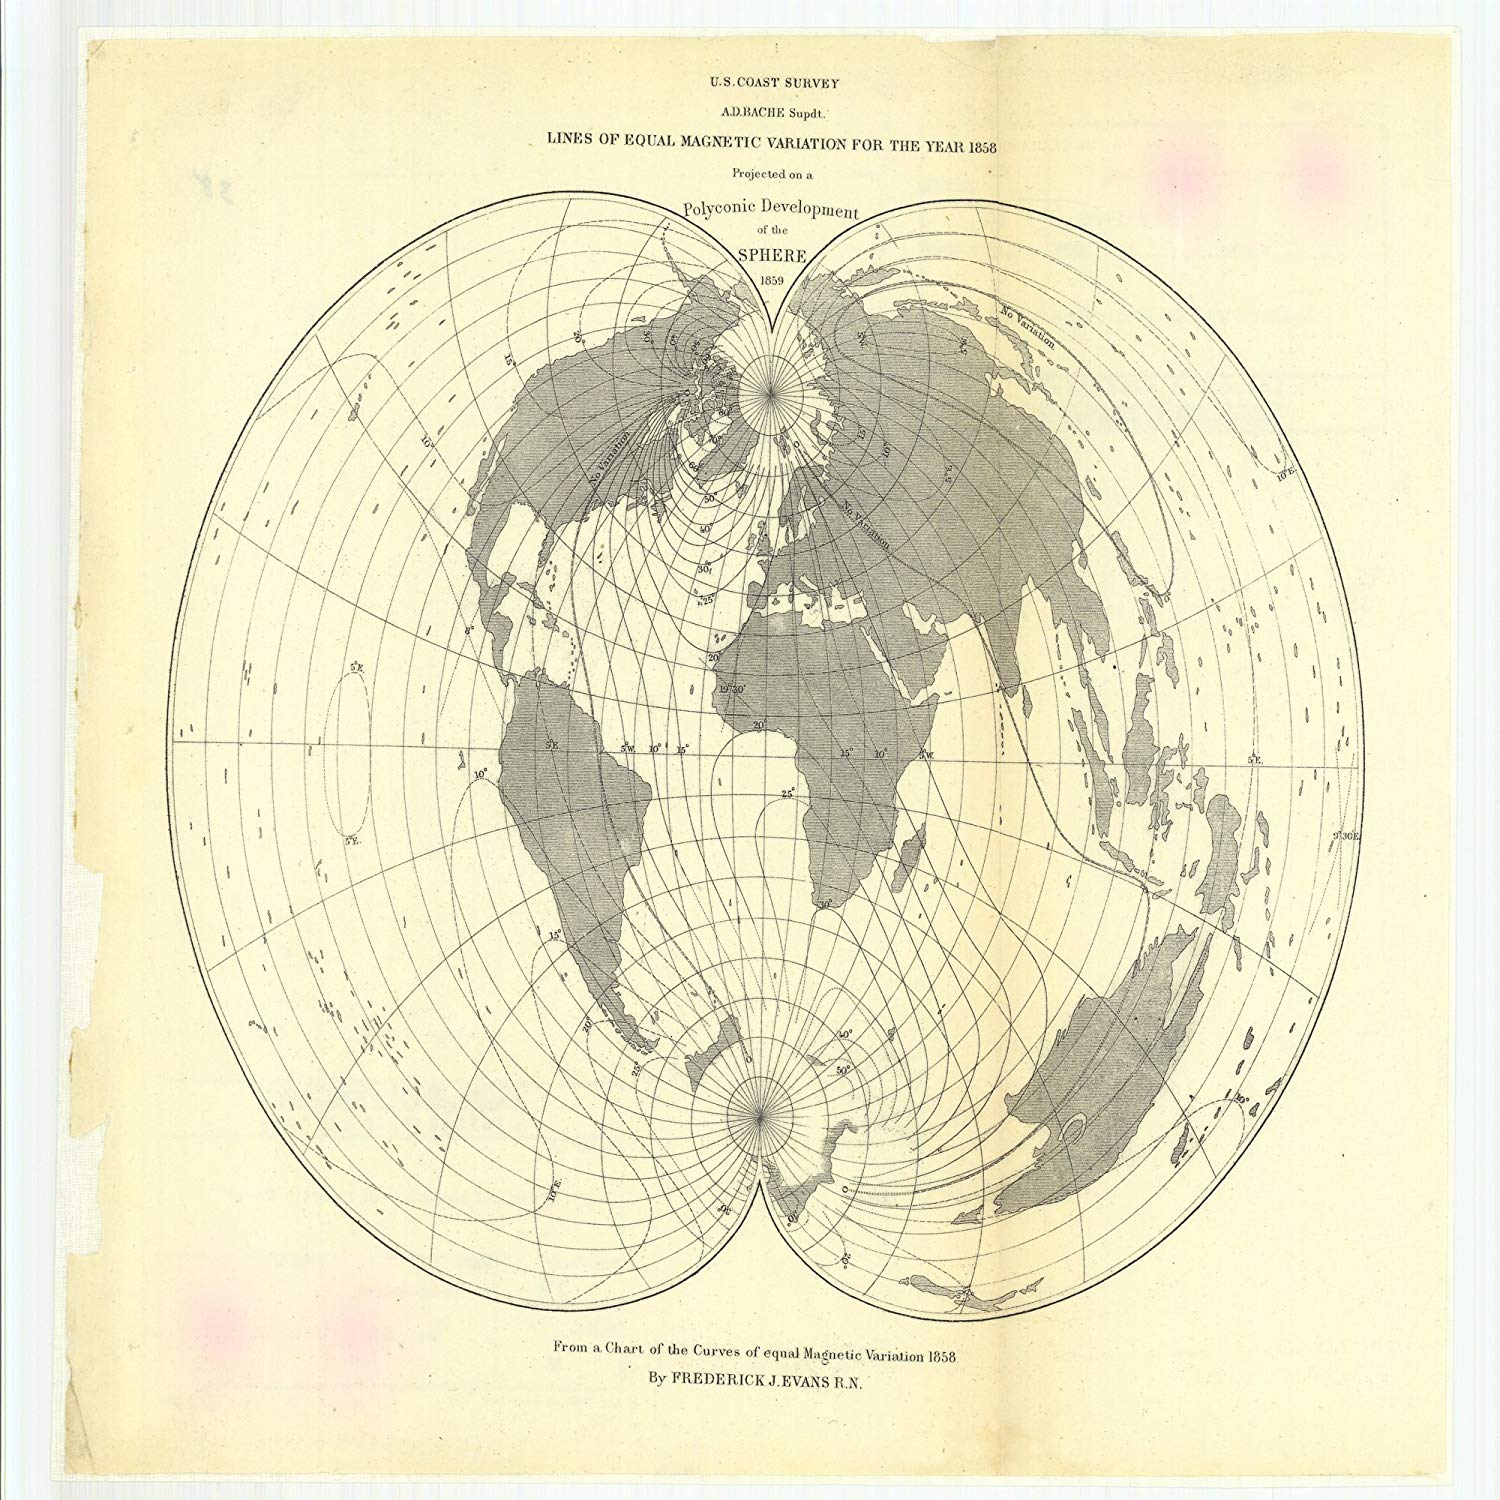 Vintography 8 x 12 inch 1880 Other Old Nautical map Drawing Chart Gnomonic Projection Flamsteed's Projection, Mercator's Projection Polyconic Projections from U.S. Coast Survey x7251